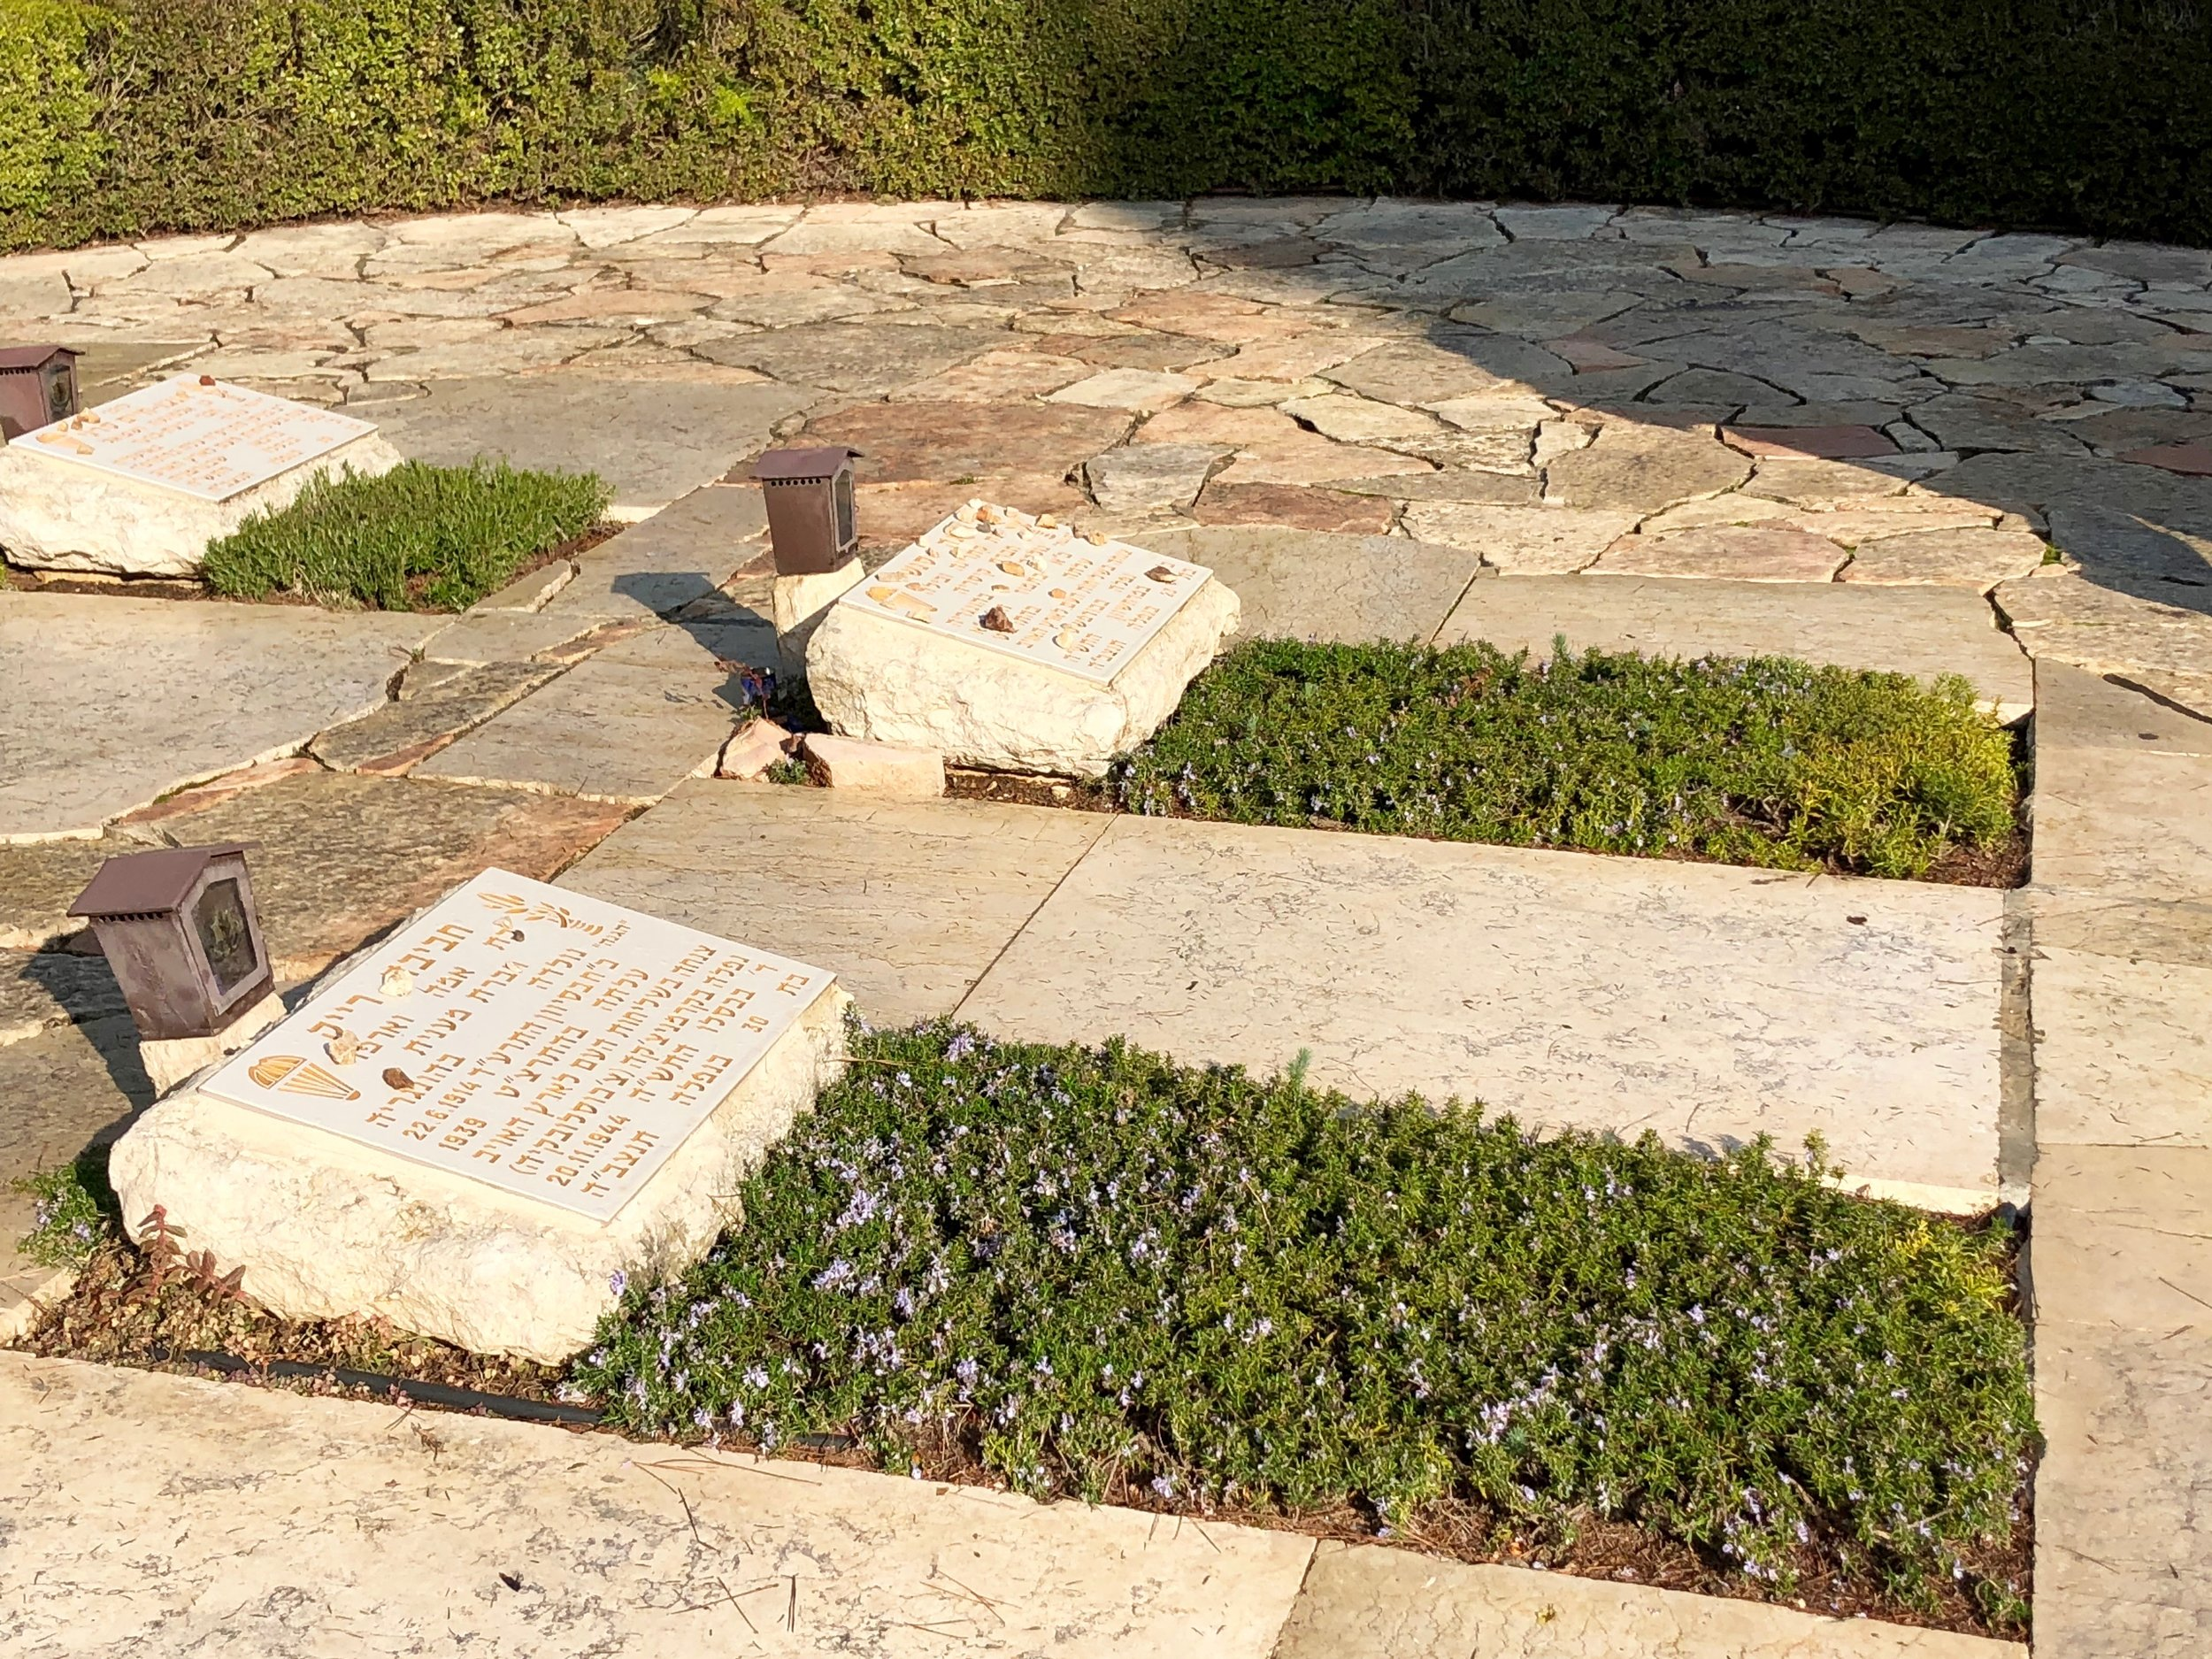 Haviva Reik (foreground) and Hannah Senesh (background) buried next to each other in the Paratrooper's Section at Har Herzl cemetery in Jerusalem. Photo source: Jason Harris